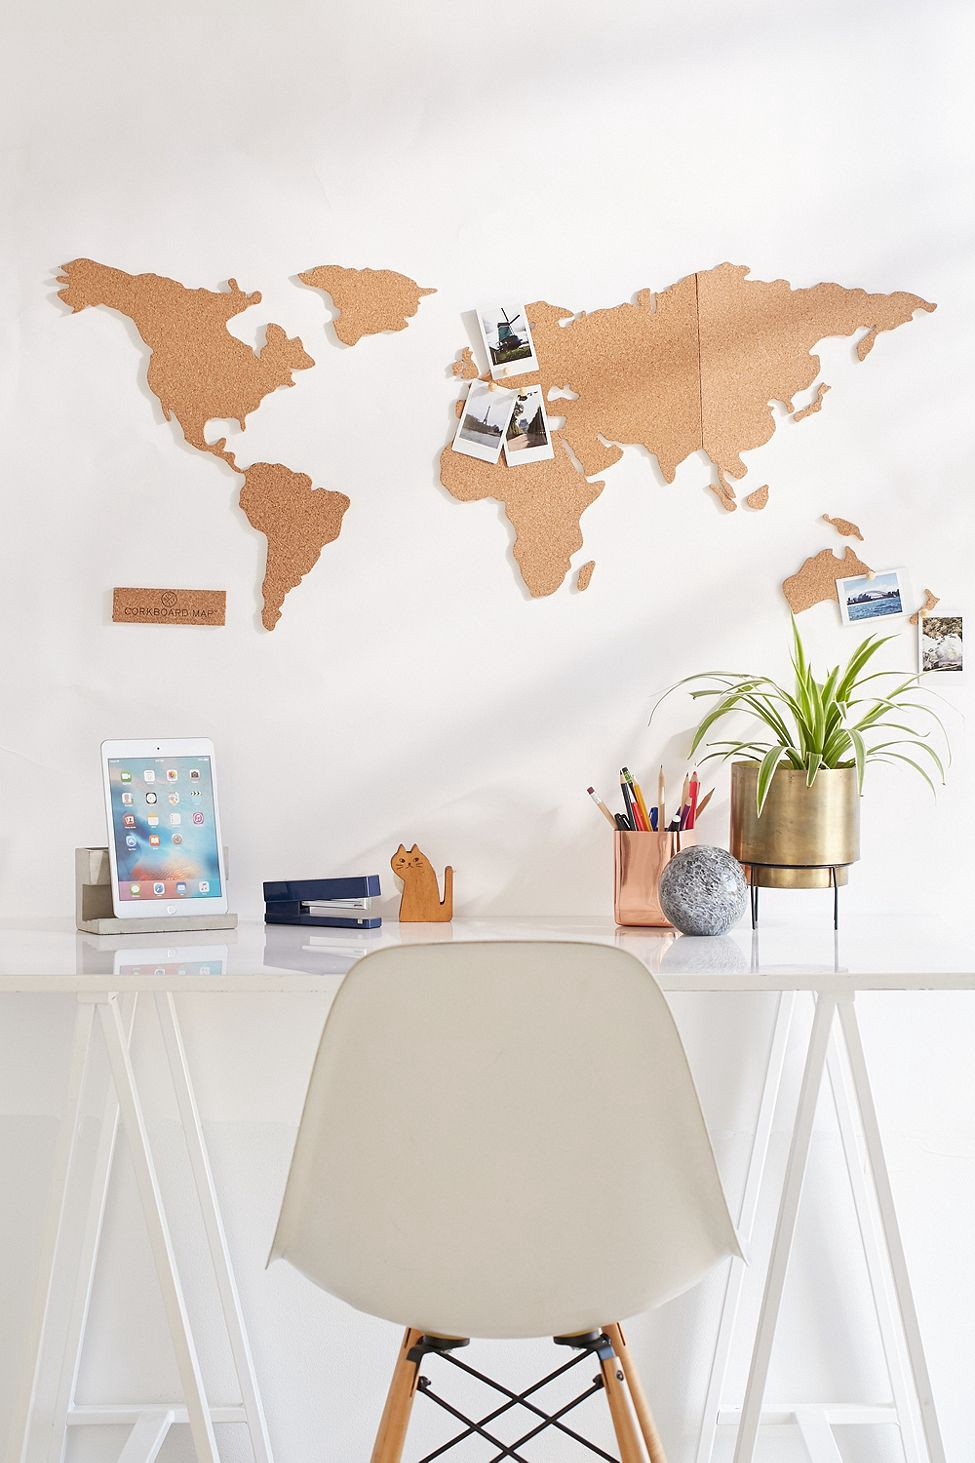 Urban Outfitters Cork Board World Map Cream e Size